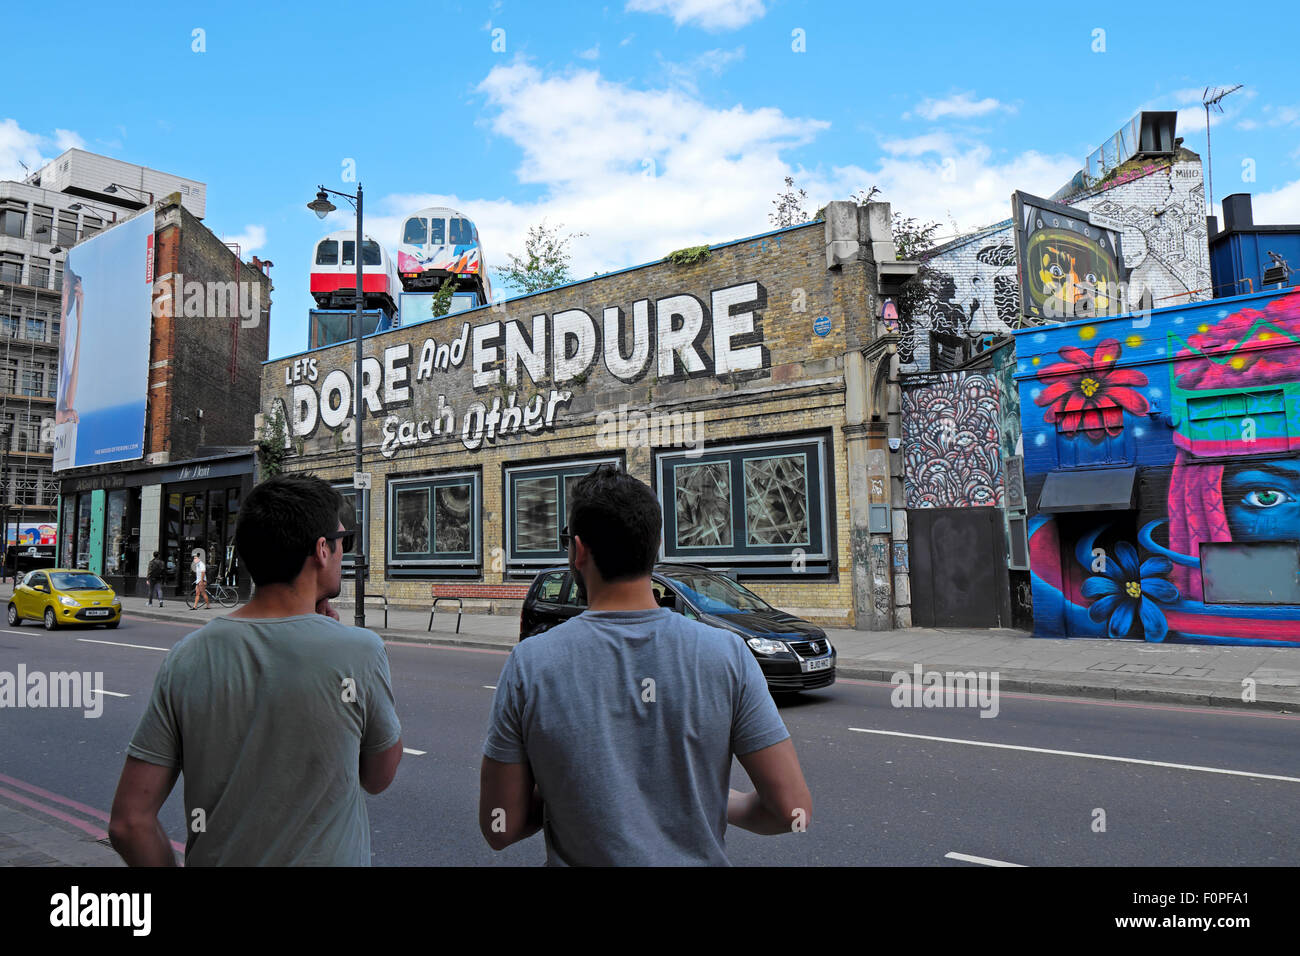 Two men looking at Let's Adore and Endure Each Other graffiti on wall in Great Eastern Street in Shoreditch - Stock Image